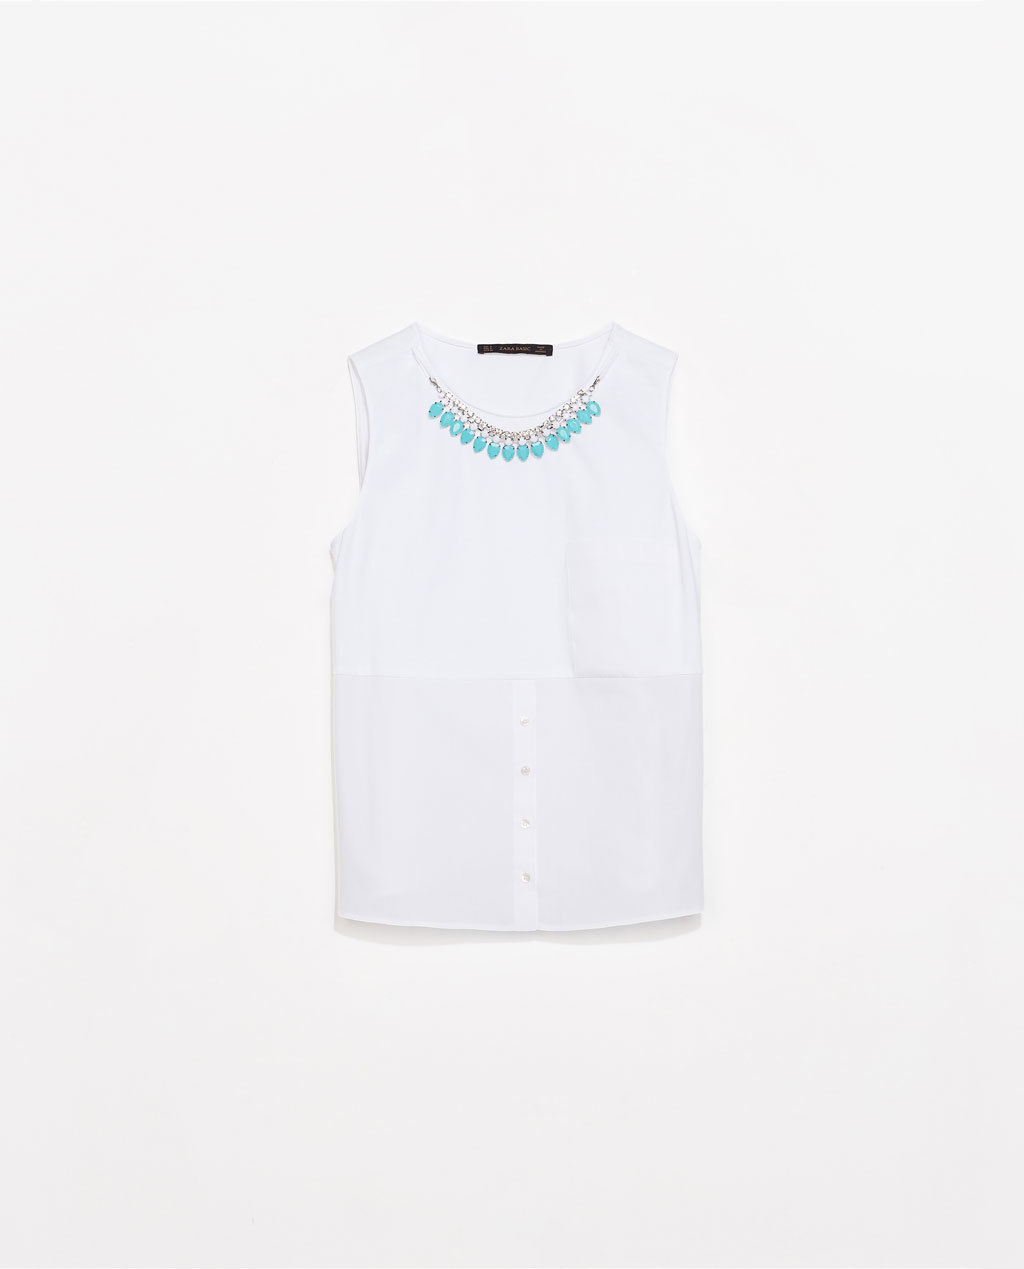 Combined Top With Necklace And Pocket - neckline: round neck; pattern: plain; sleeve style: sleeveless; bust detail: added detail/embellishment at bust; predominant colour: white; secondary colour: turquoise; occasions: casual, work, creative work; length: standard; style: top; fibres: cotton - 100%; fit: straight cut; sleeve length: sleeveless; texture group: cotton feel fabrics; pattern type: fabric; embellishment: jewels/stone; season: s/s 2014